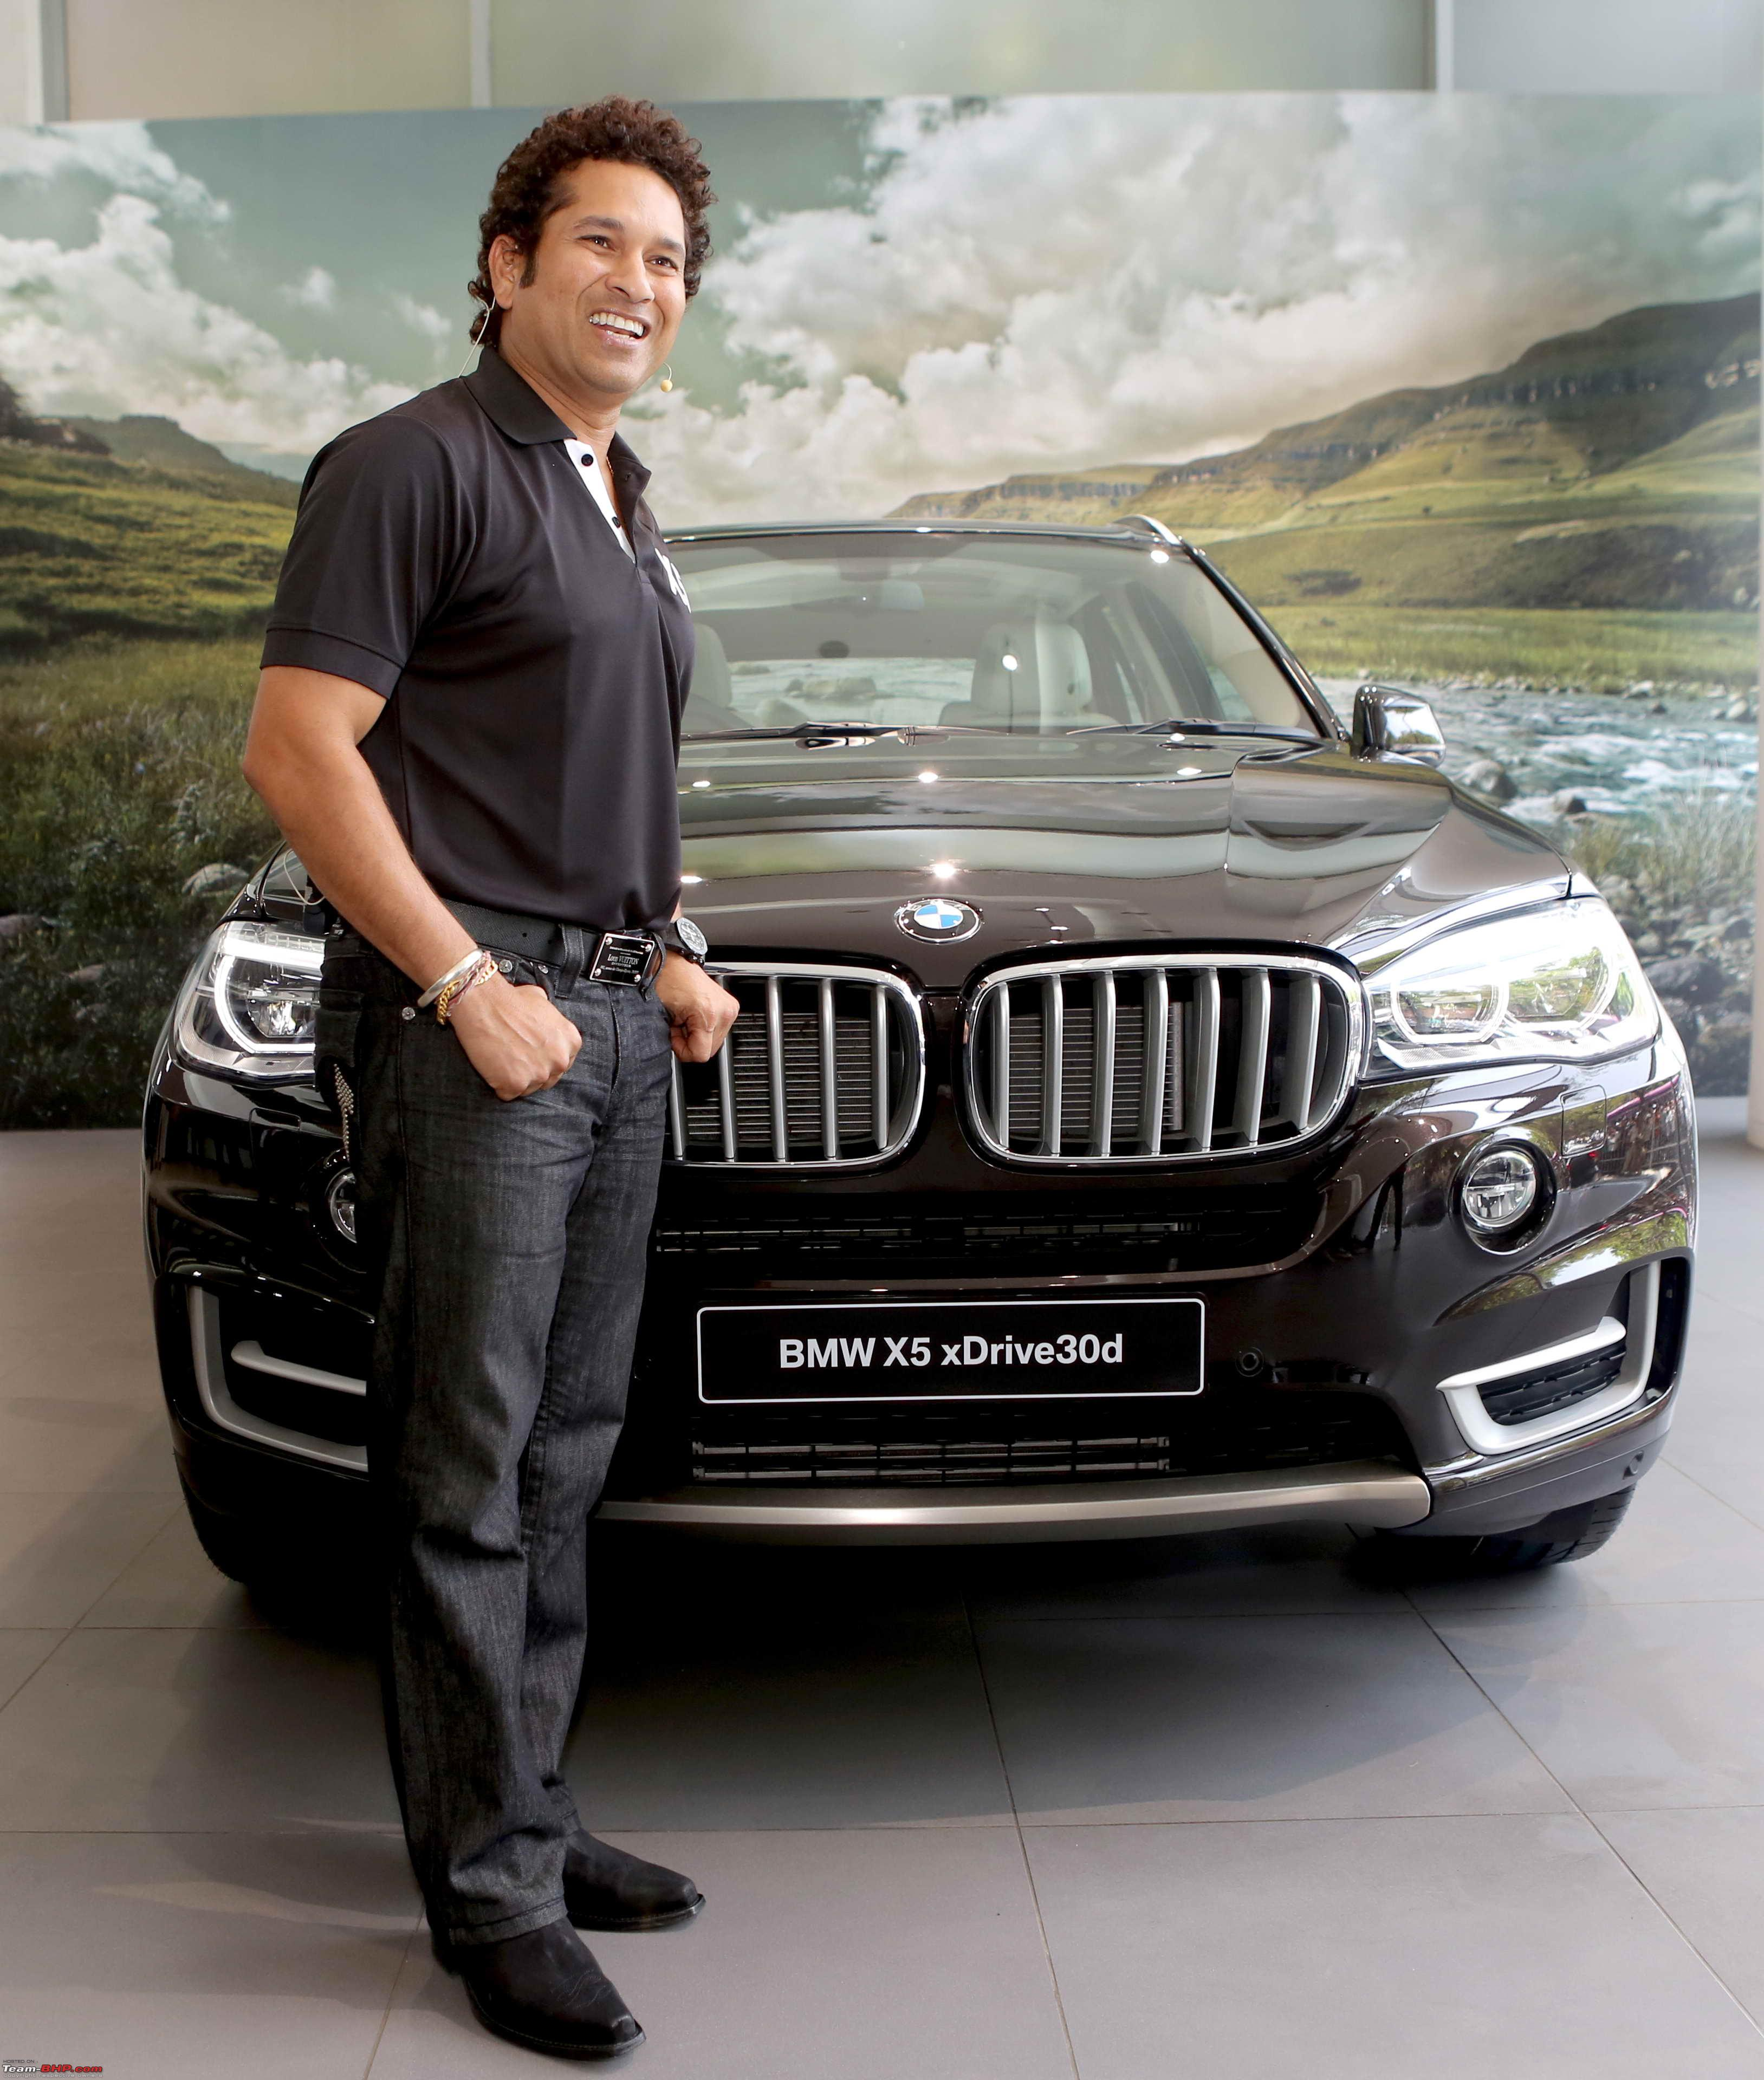 Bmwpany In India: Third Generation BMW X5 Launched In India At Rs. 70.9 Lakh